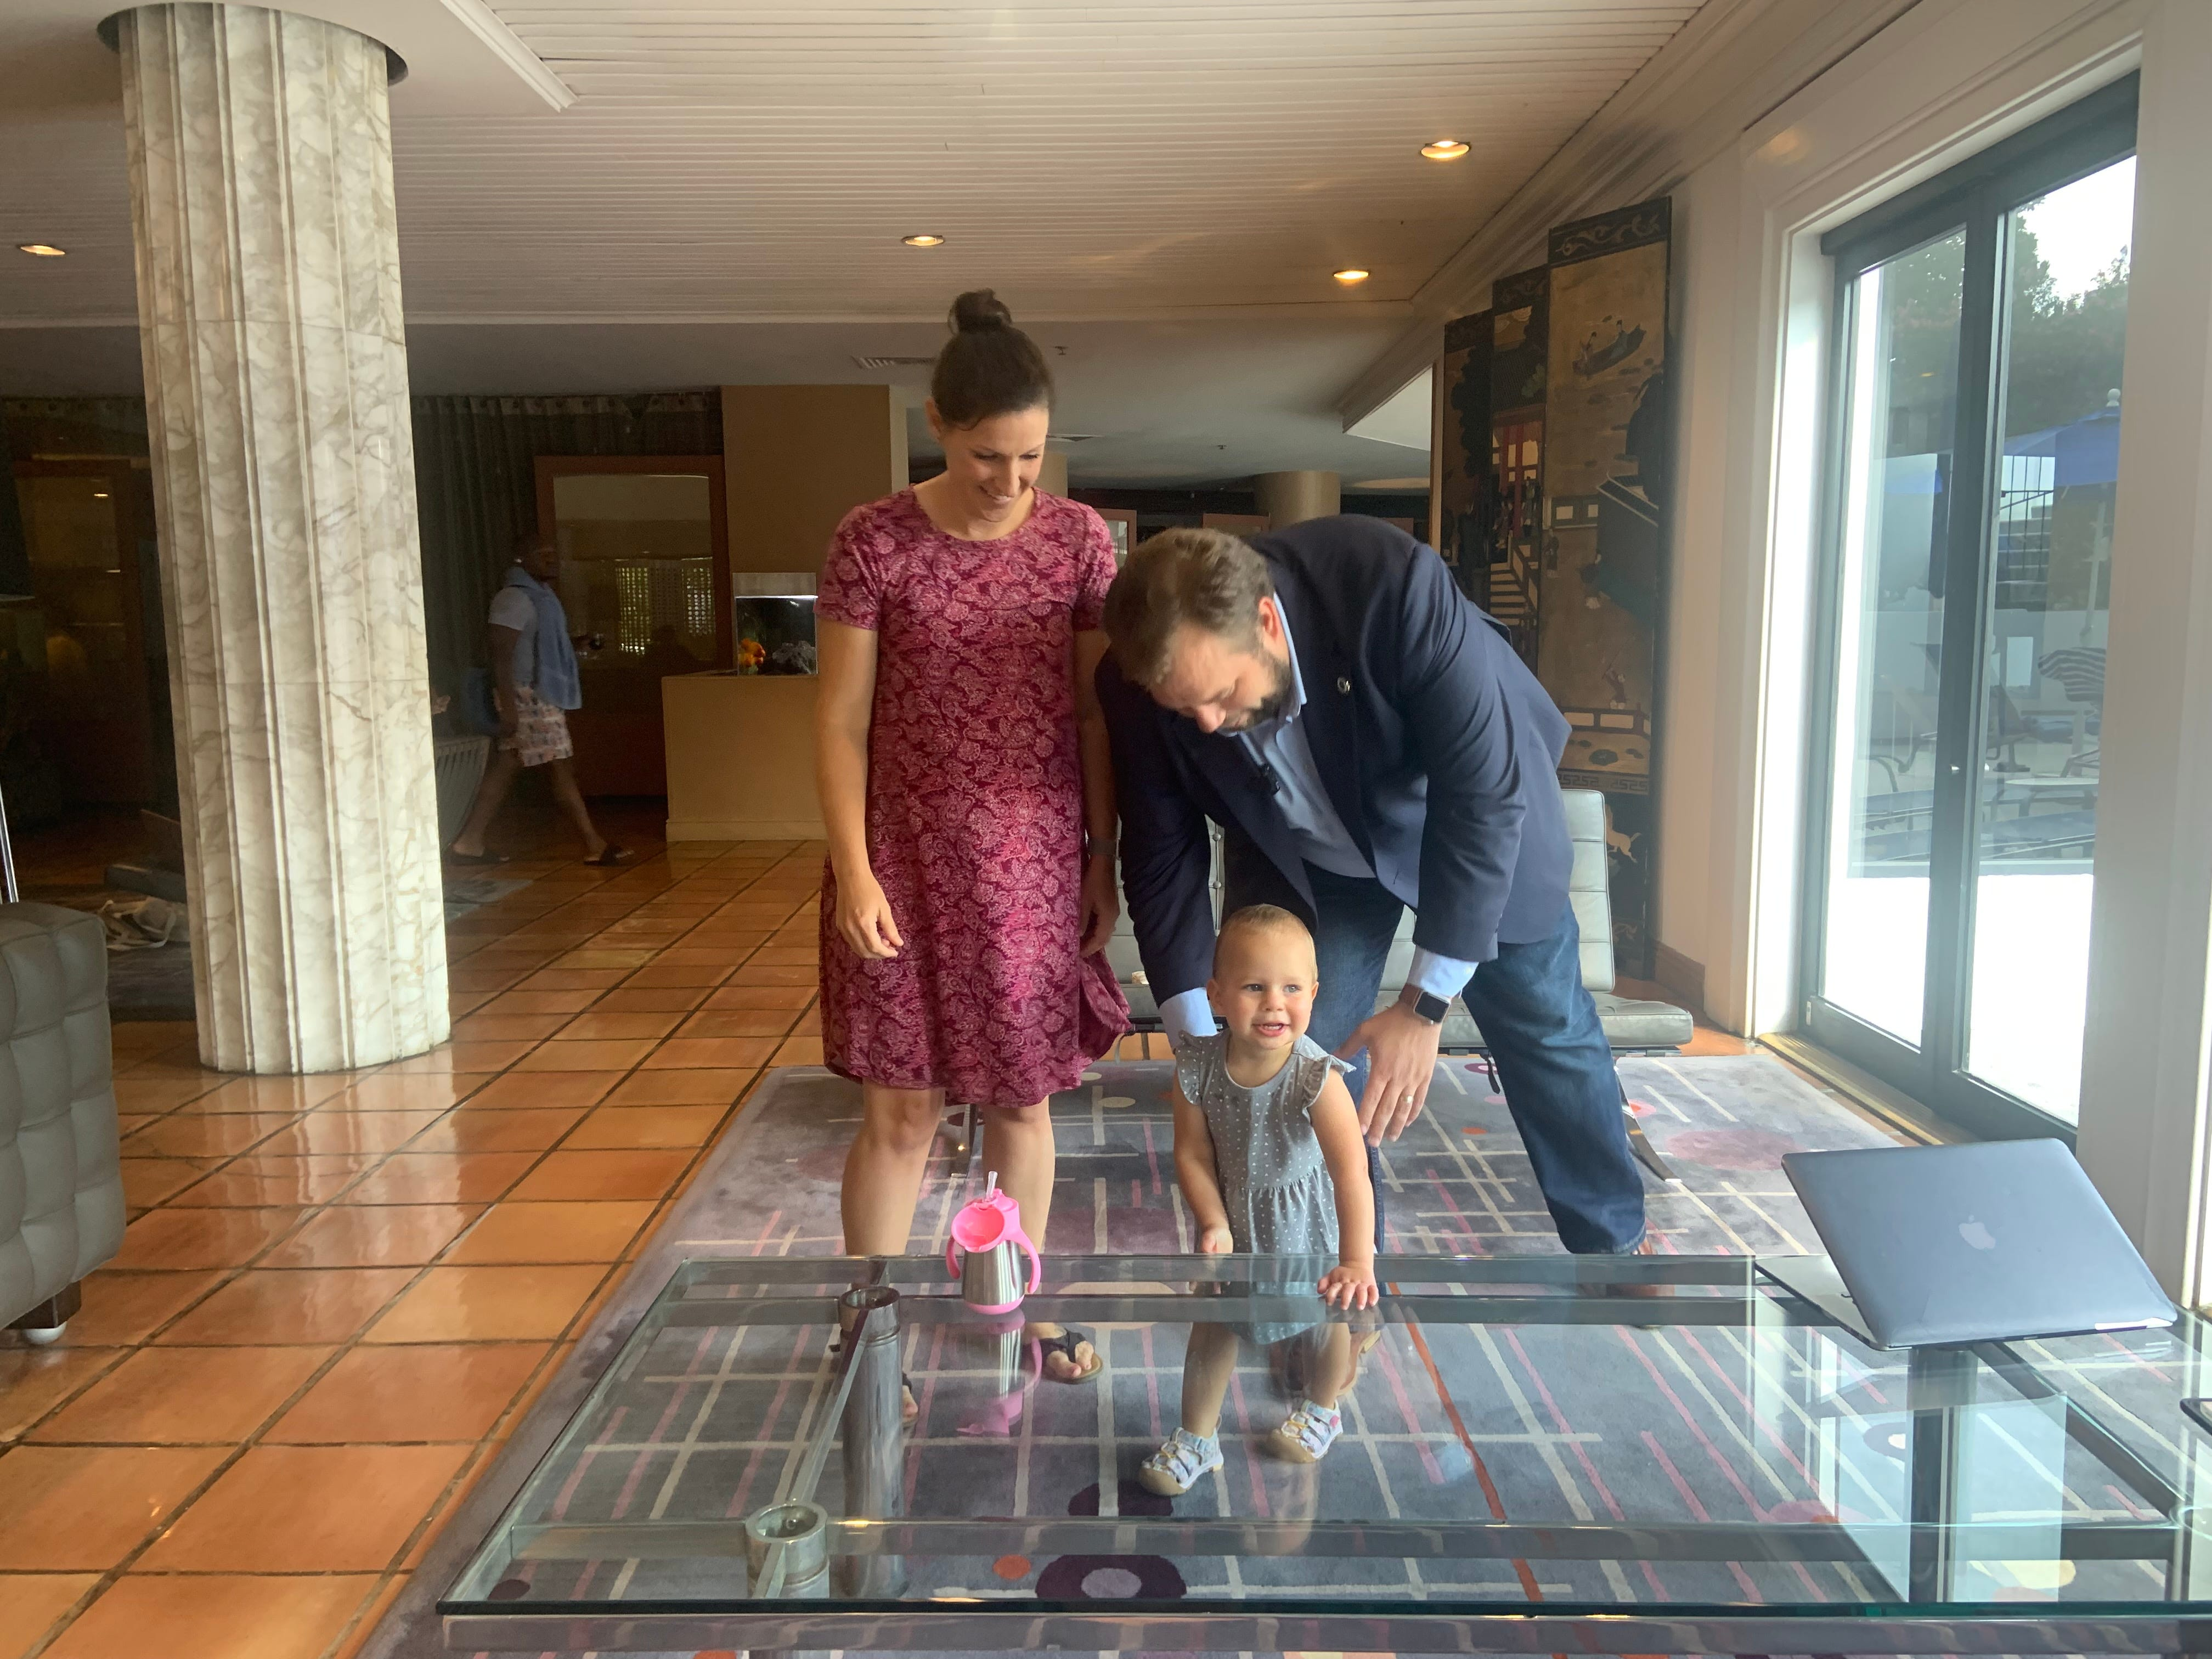 State Rep. John Bucy, D-Austin, stands in the lobby of a Washington hotel with his daughter, Bradley, and wife, Molly, on Friday, July 16, 2021.